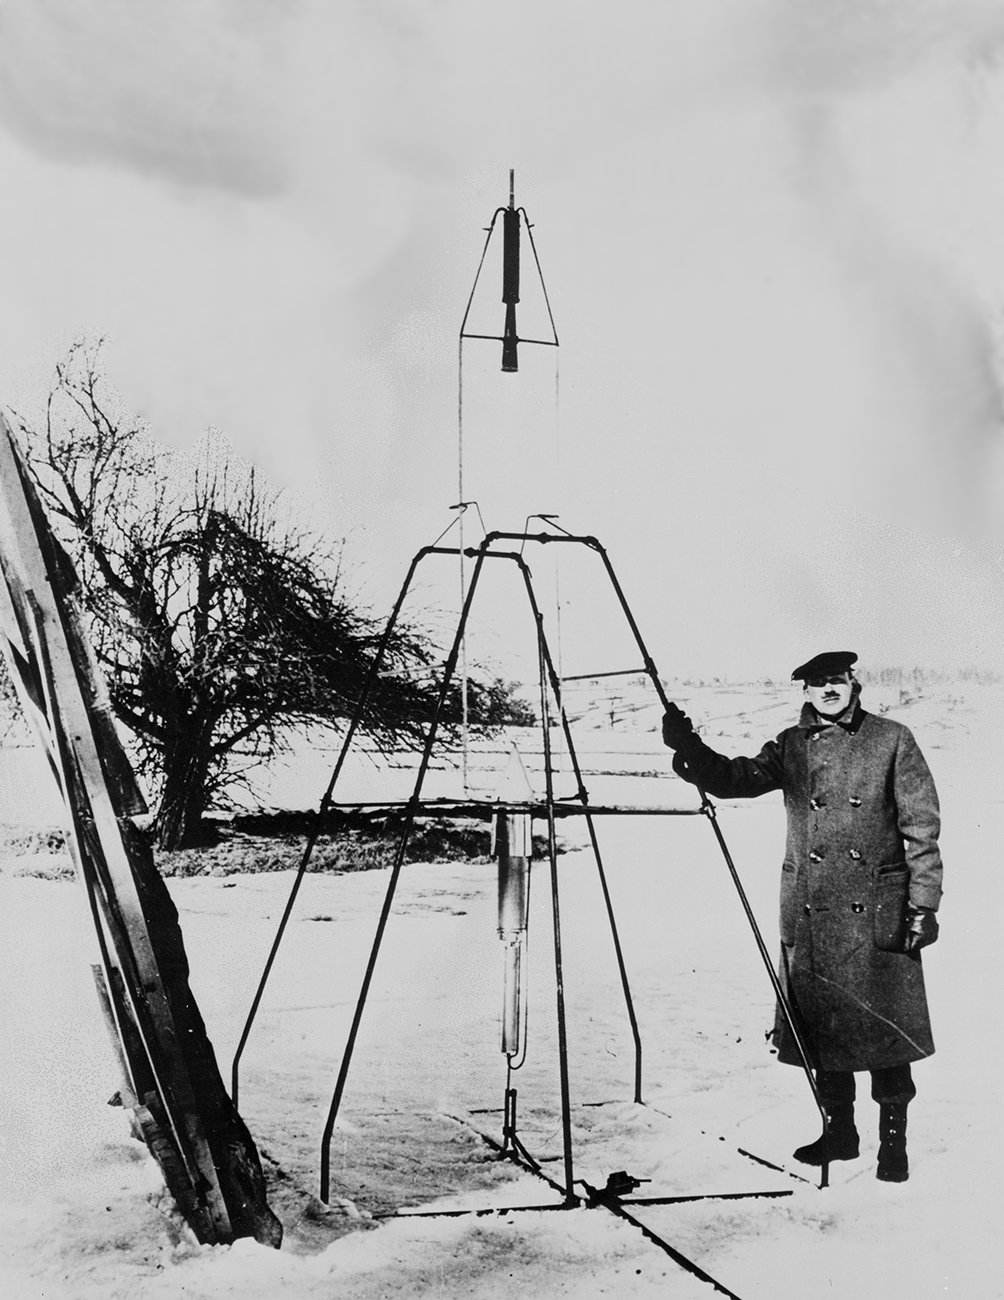 Dr. Robert H. Goddard and his liquid-fueled rocket in the frame from which it was fired on March 16, 1926, at Auburn, Mass.